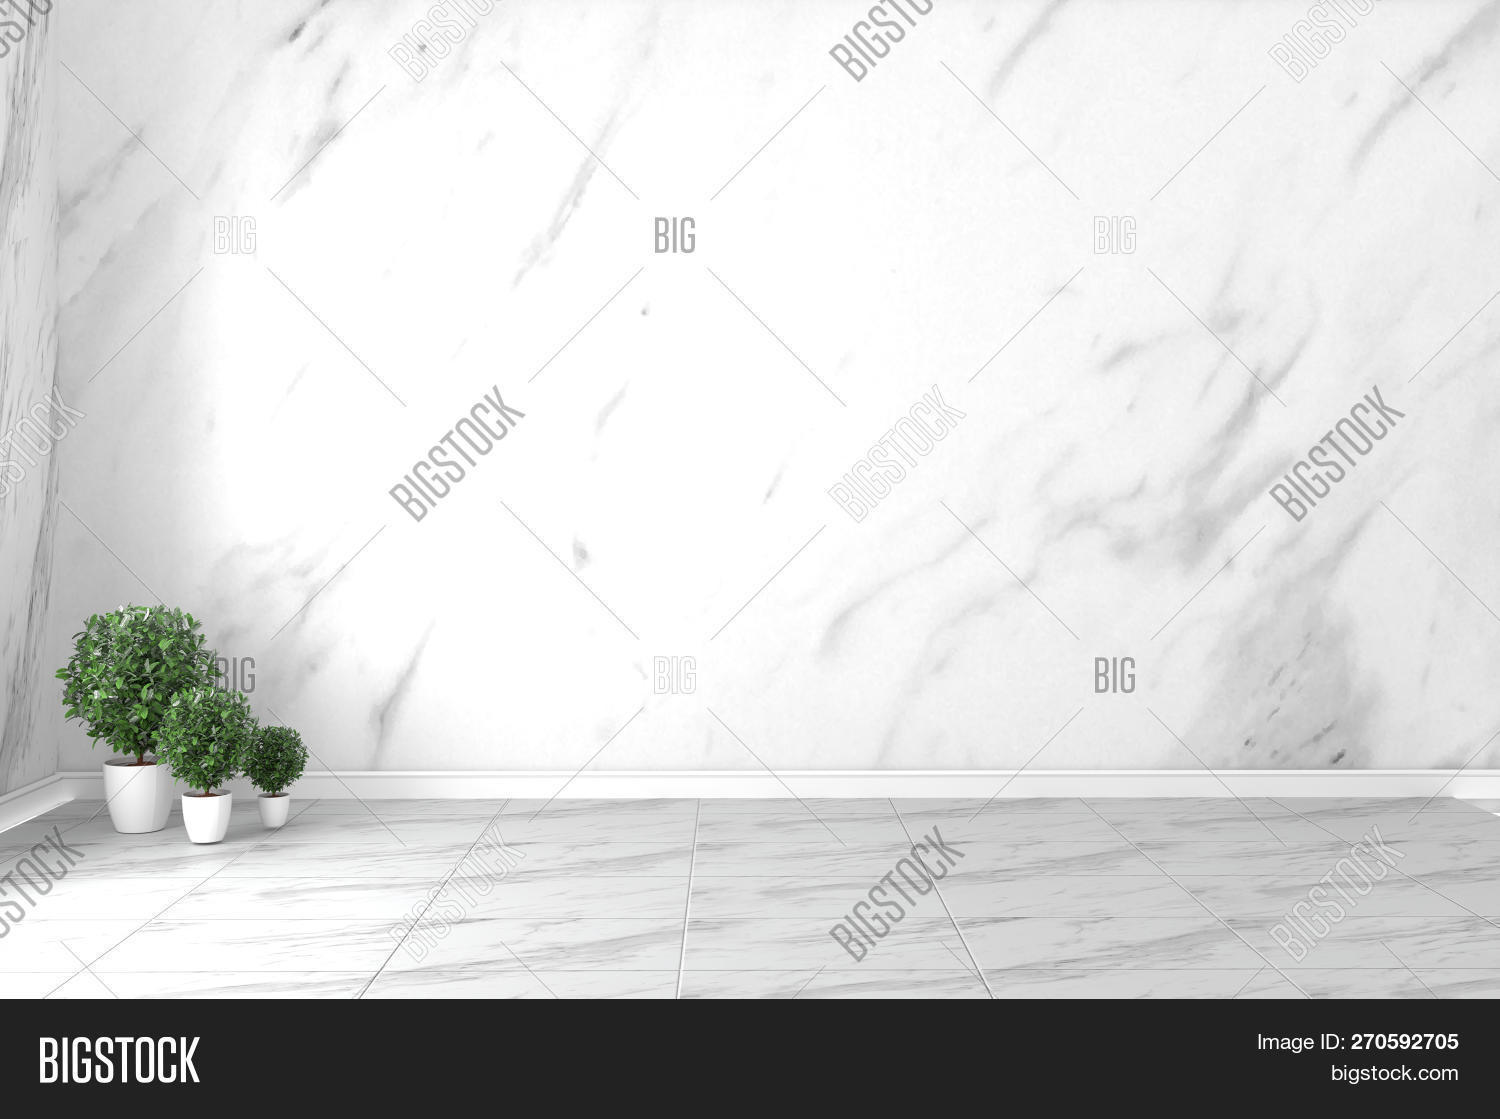 3d,abstract,advertise,backdrop,background,black,blank,board,bright,business,counter,deck,design,desk,desktop,empty,floor,furniture,granite,kitchen,layout,light,luxury,marble,mock,montage,natural,pattern,placement,plank,product,promote,put,rendering,retro,room,rustic,space,stone,table,template,texture,tiles,top,tropical,vintage,wall,white,wood